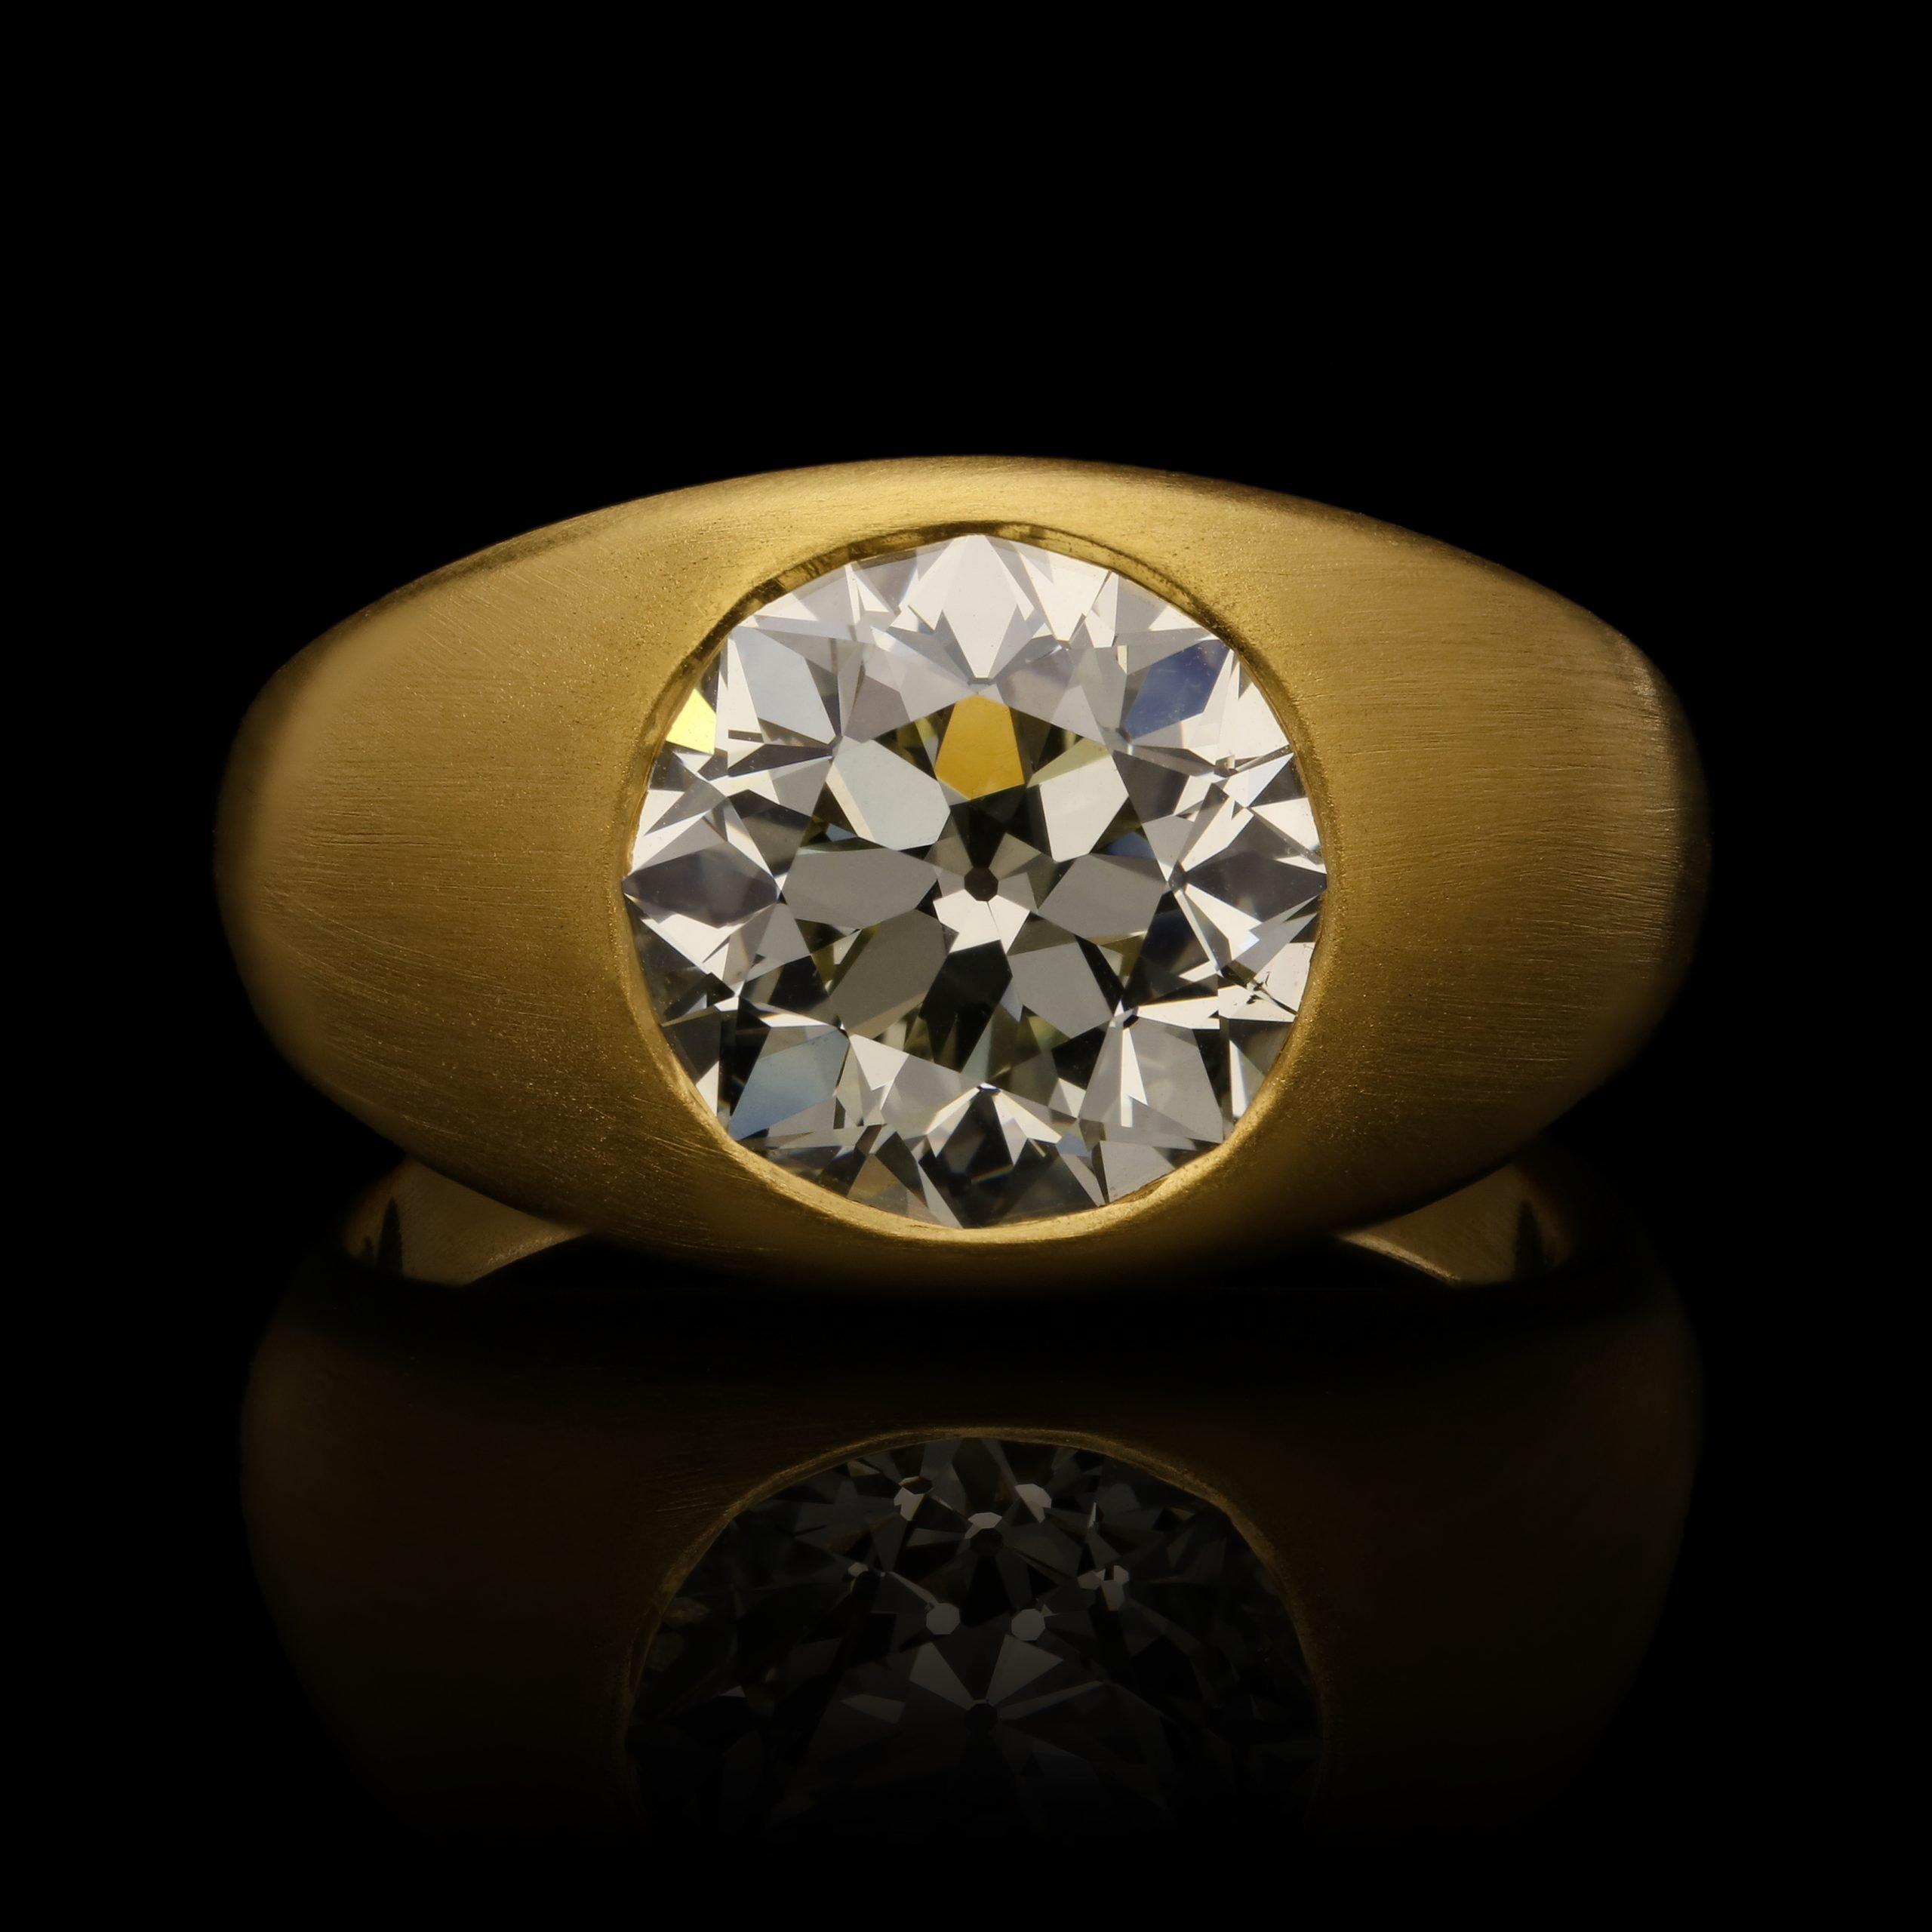 Antique Diamonds and Why We Love Them